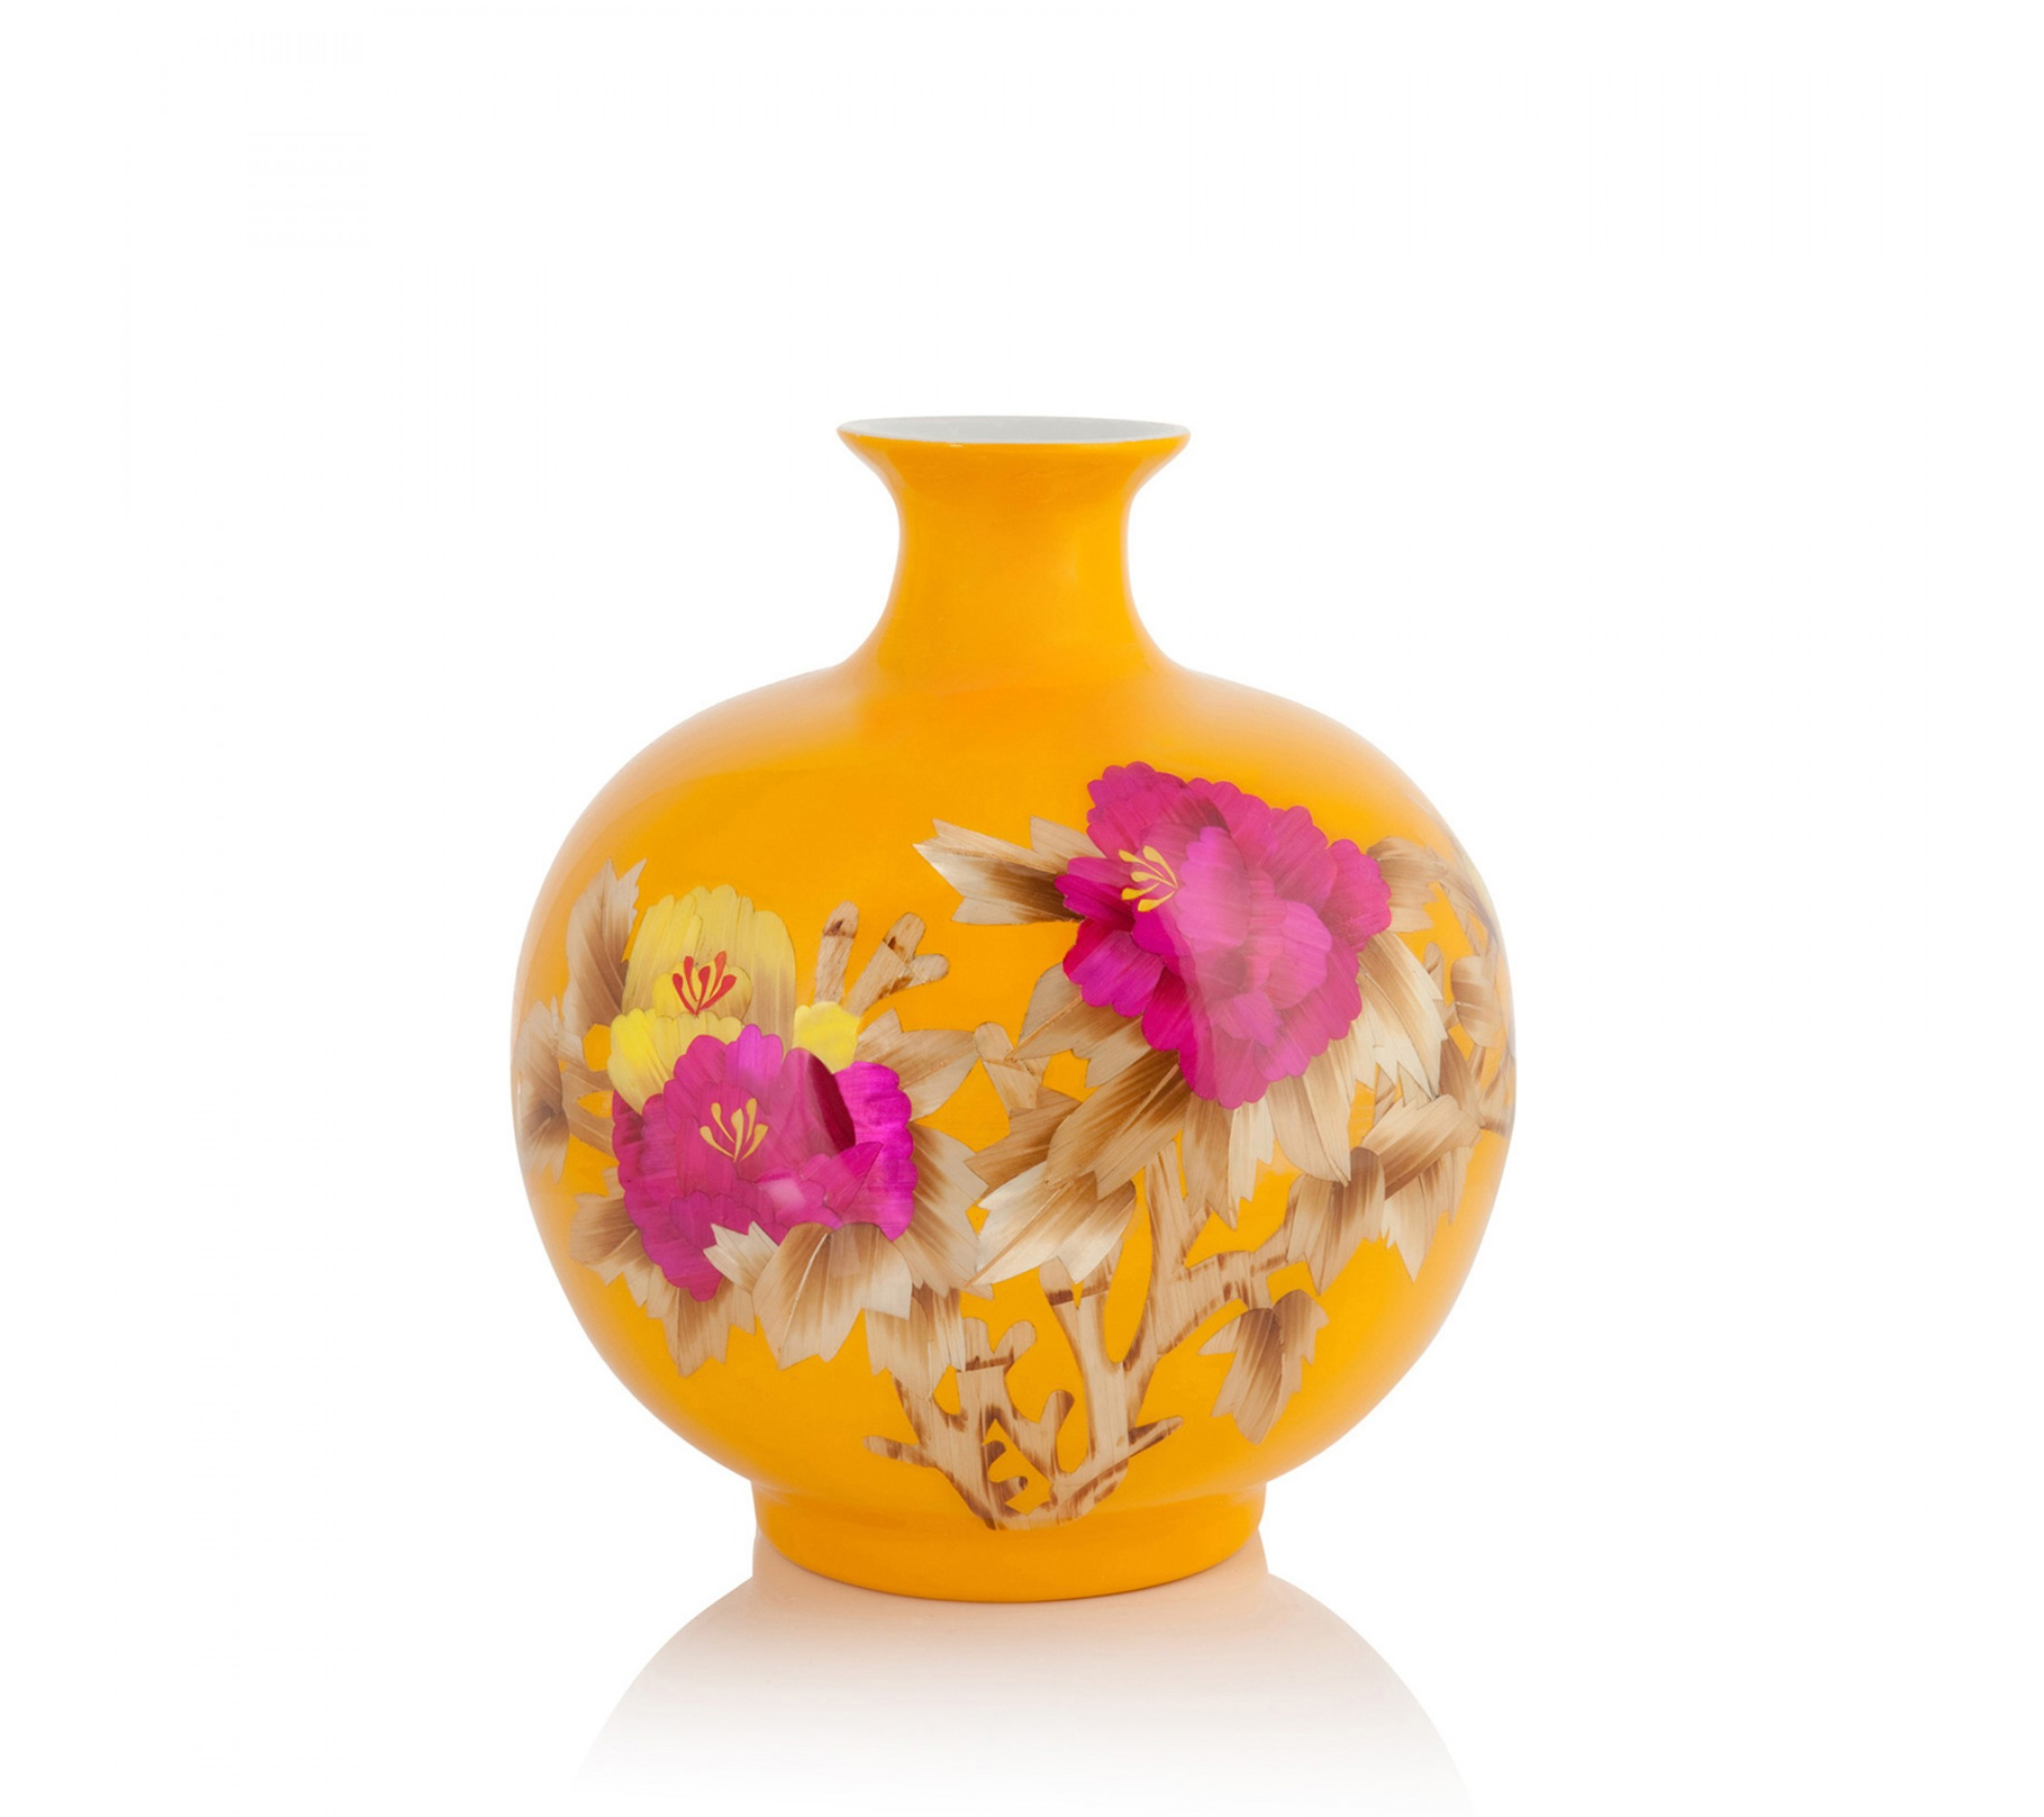 Vase Porzellan - Wheat Straw Sphere yellow